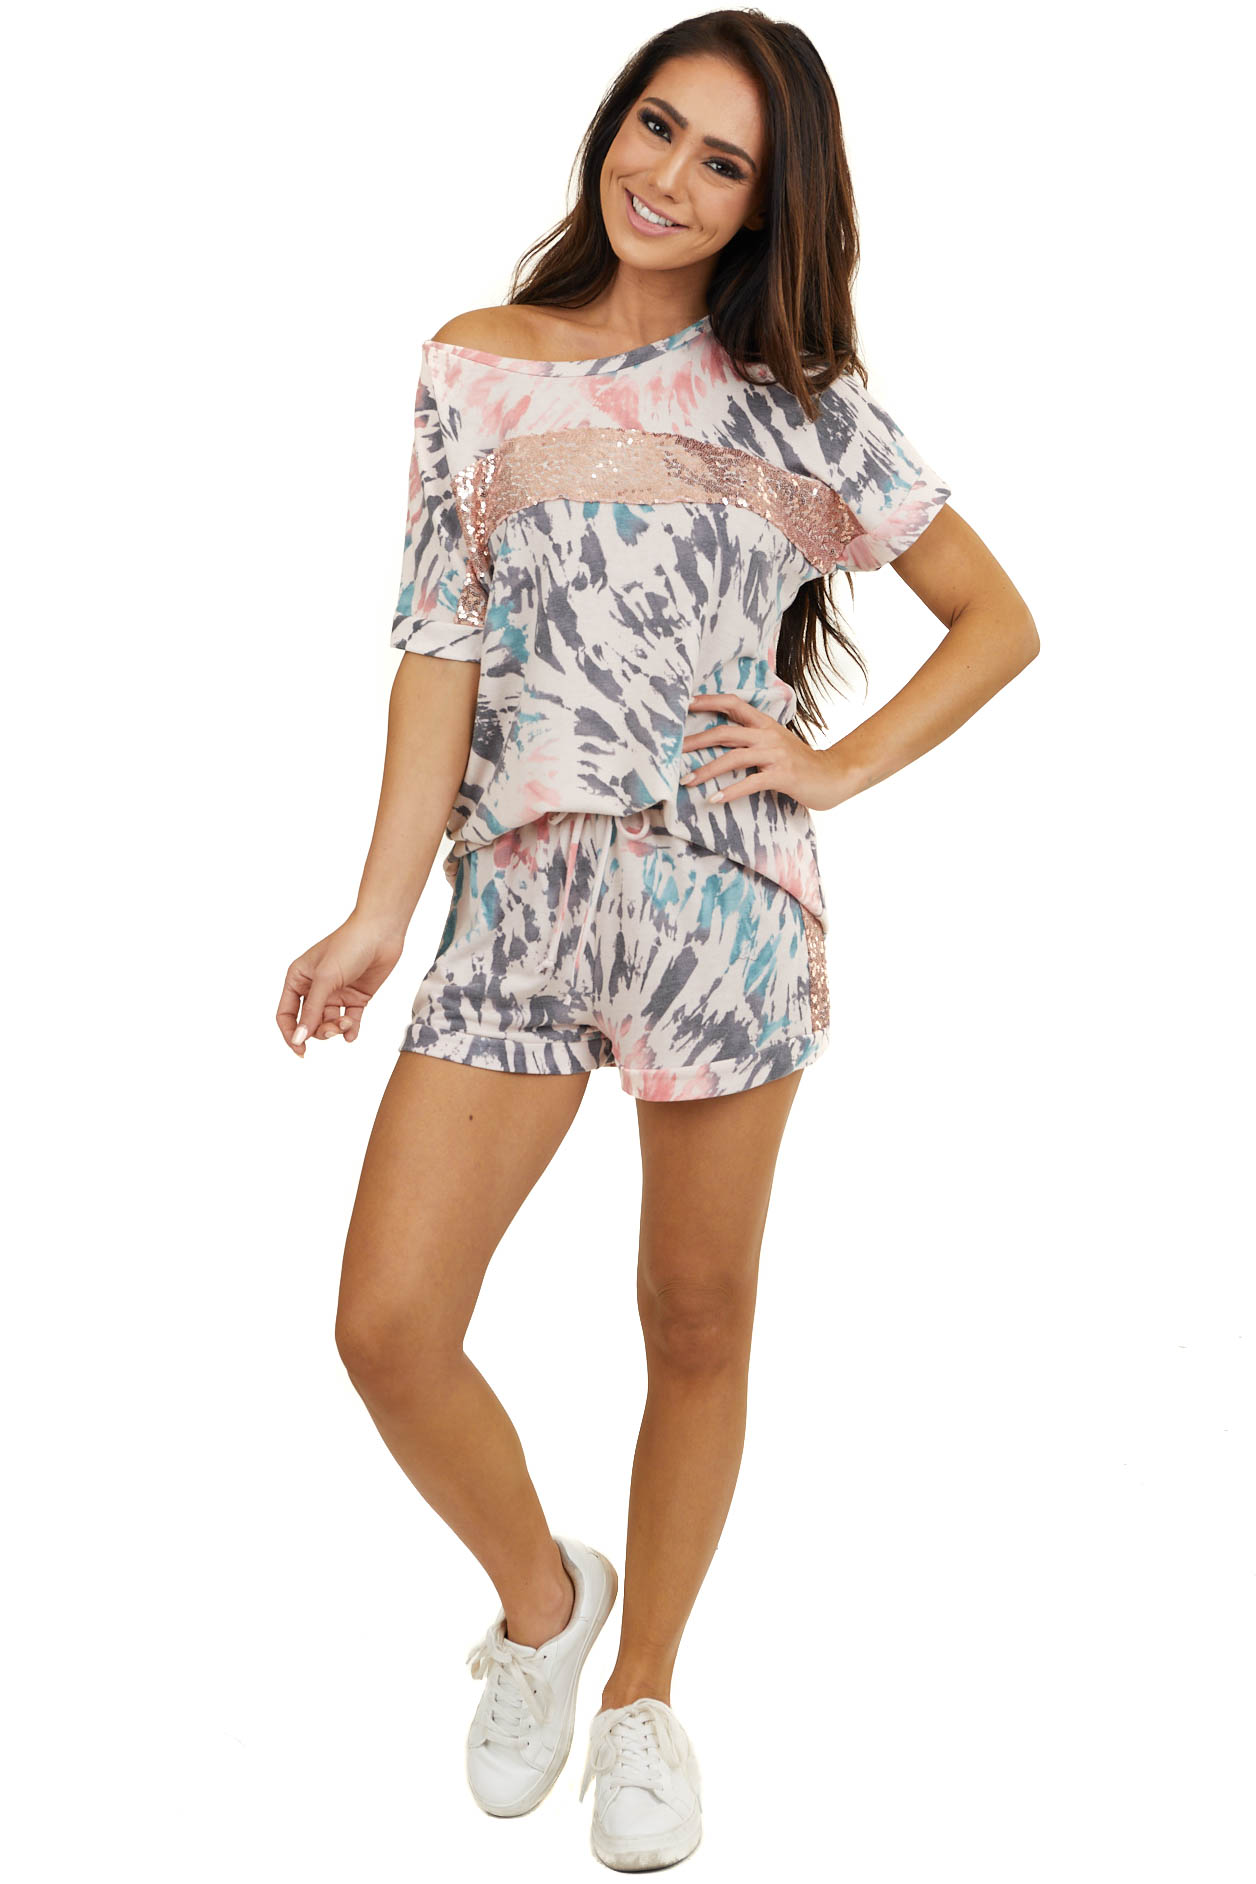 Pink Tie Dye Print Sequin Short Sleeve and Shorts Lounge Set